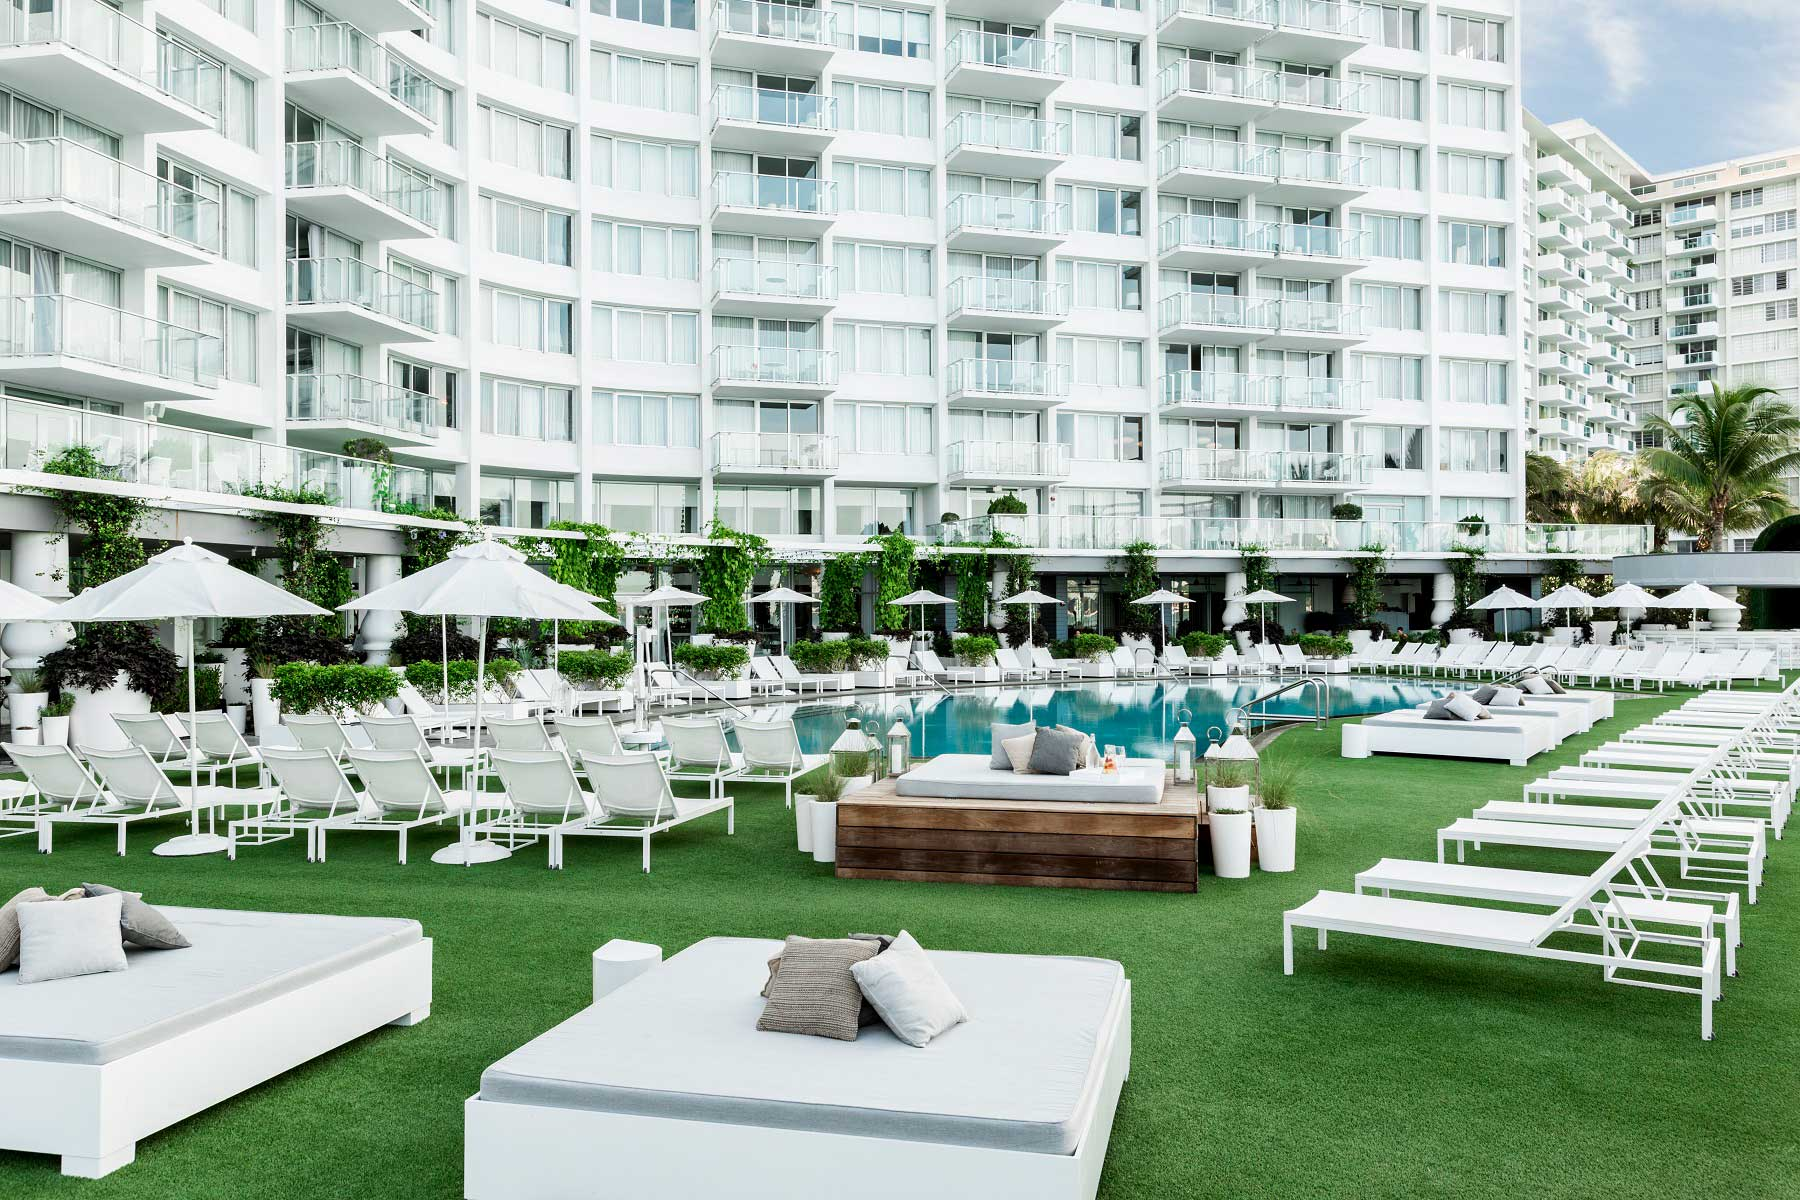 Explore The Mondrian South Beach: A Chic Waterfront Resort Venue for ...